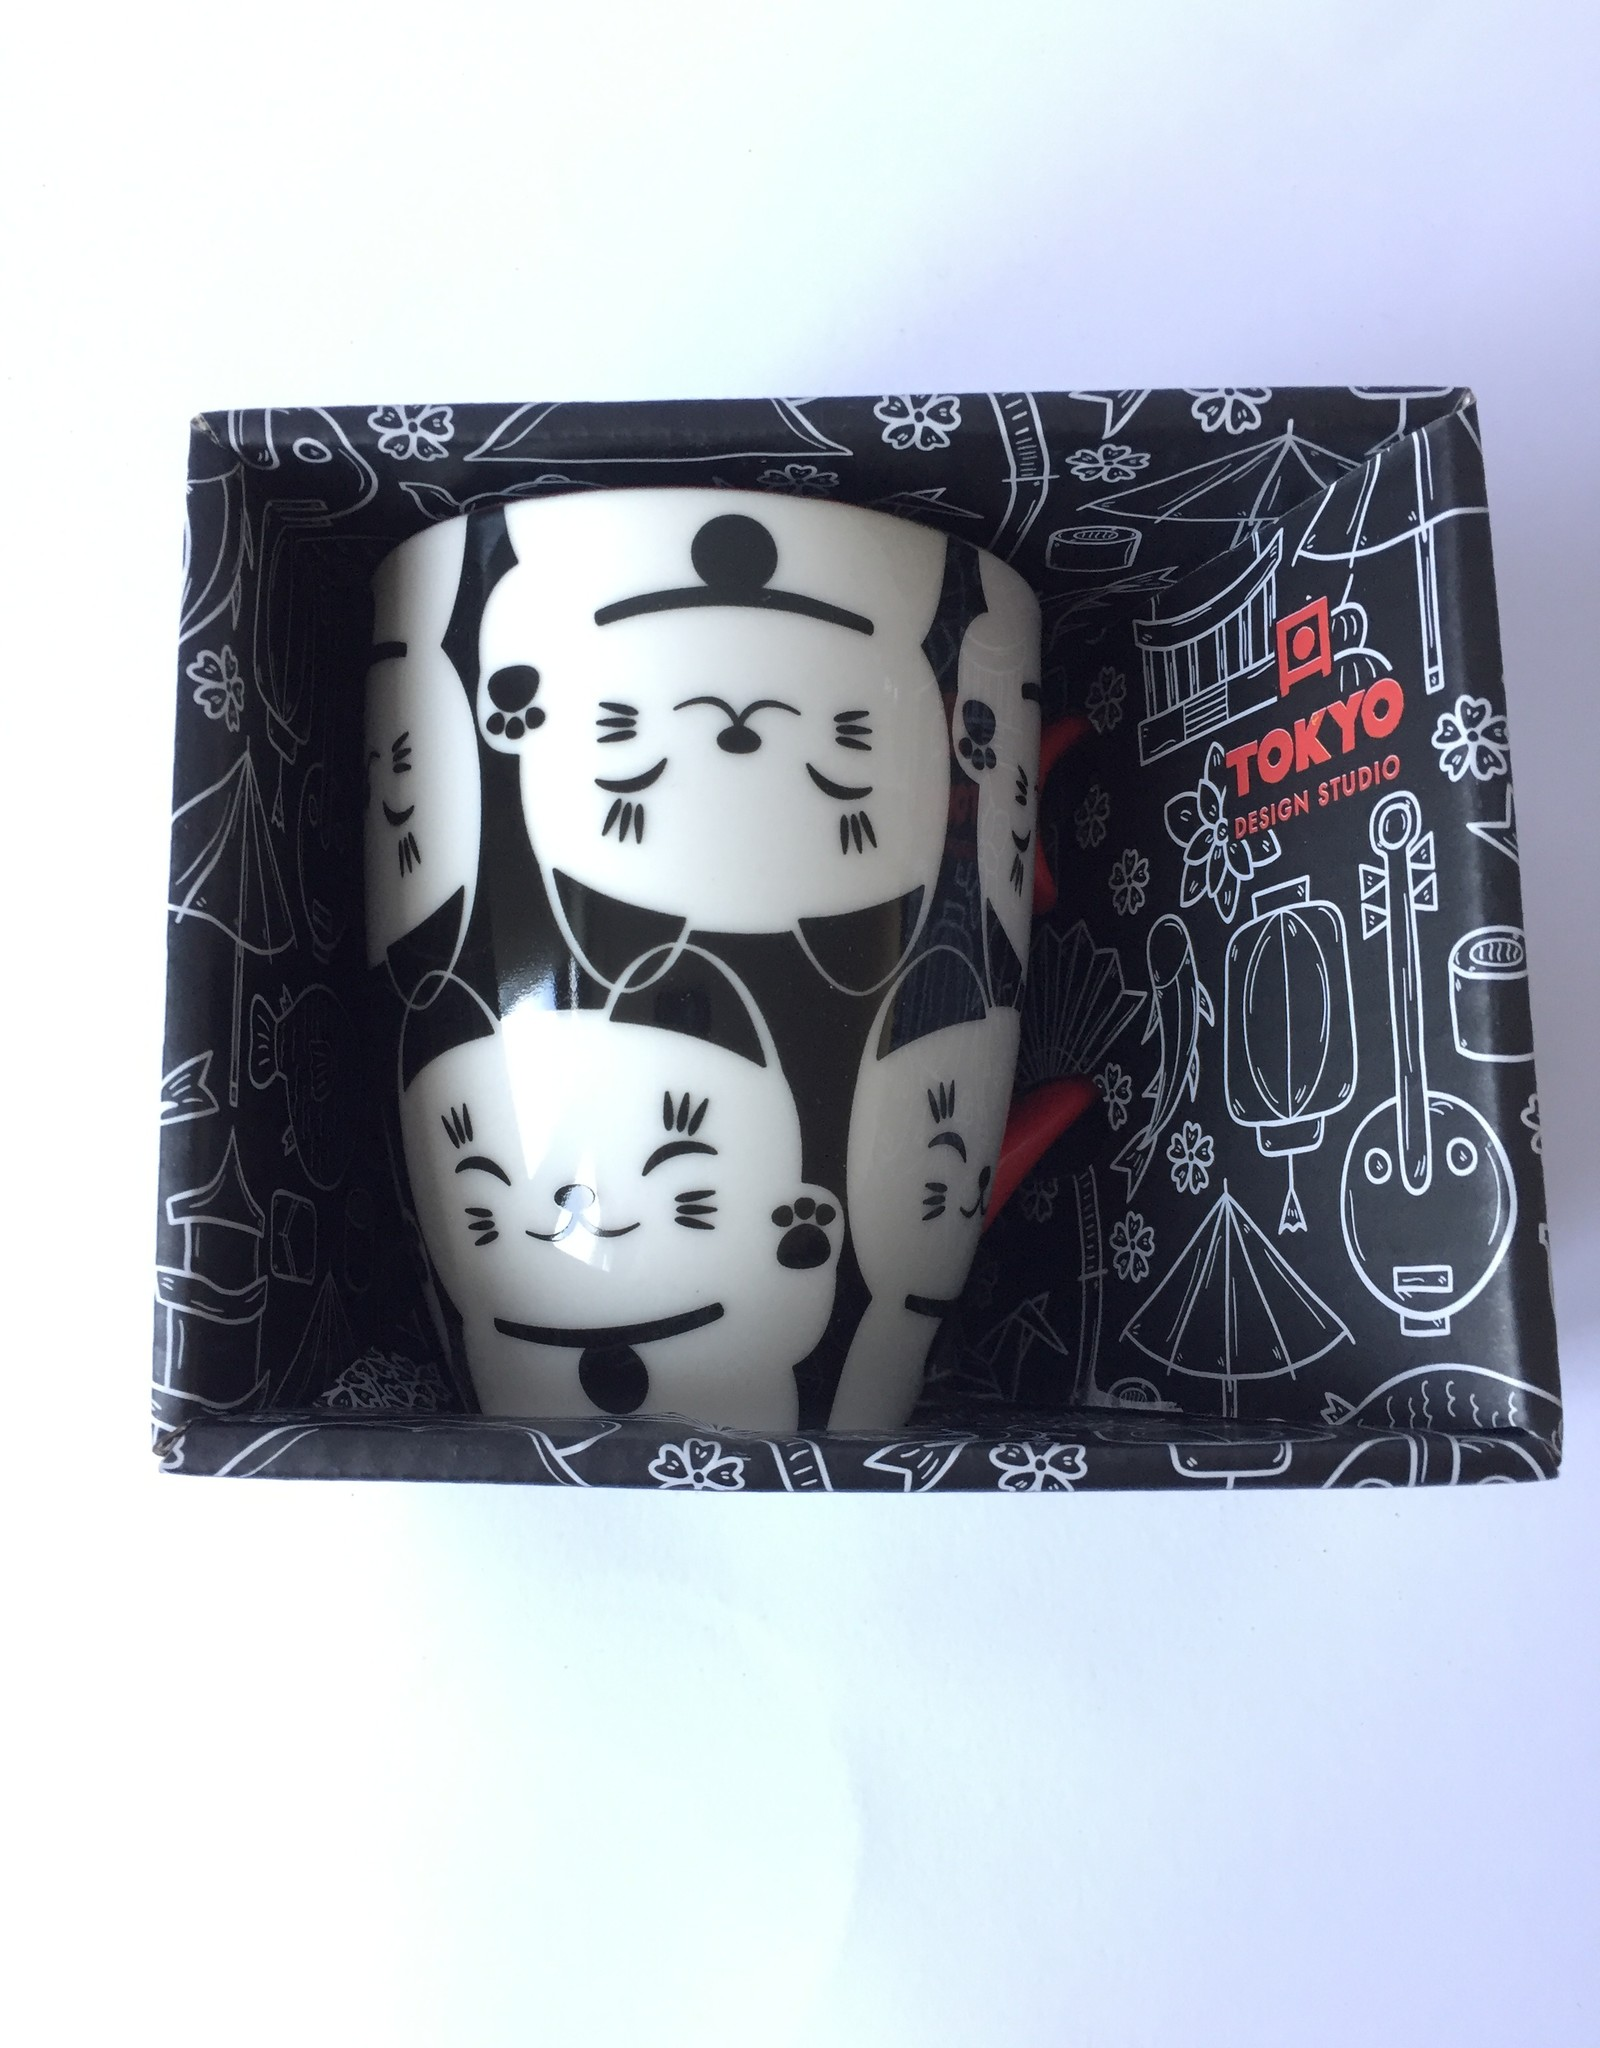 Tokyo Design Studio Kawaii Lucky Cat cup in gift box (Black / white)